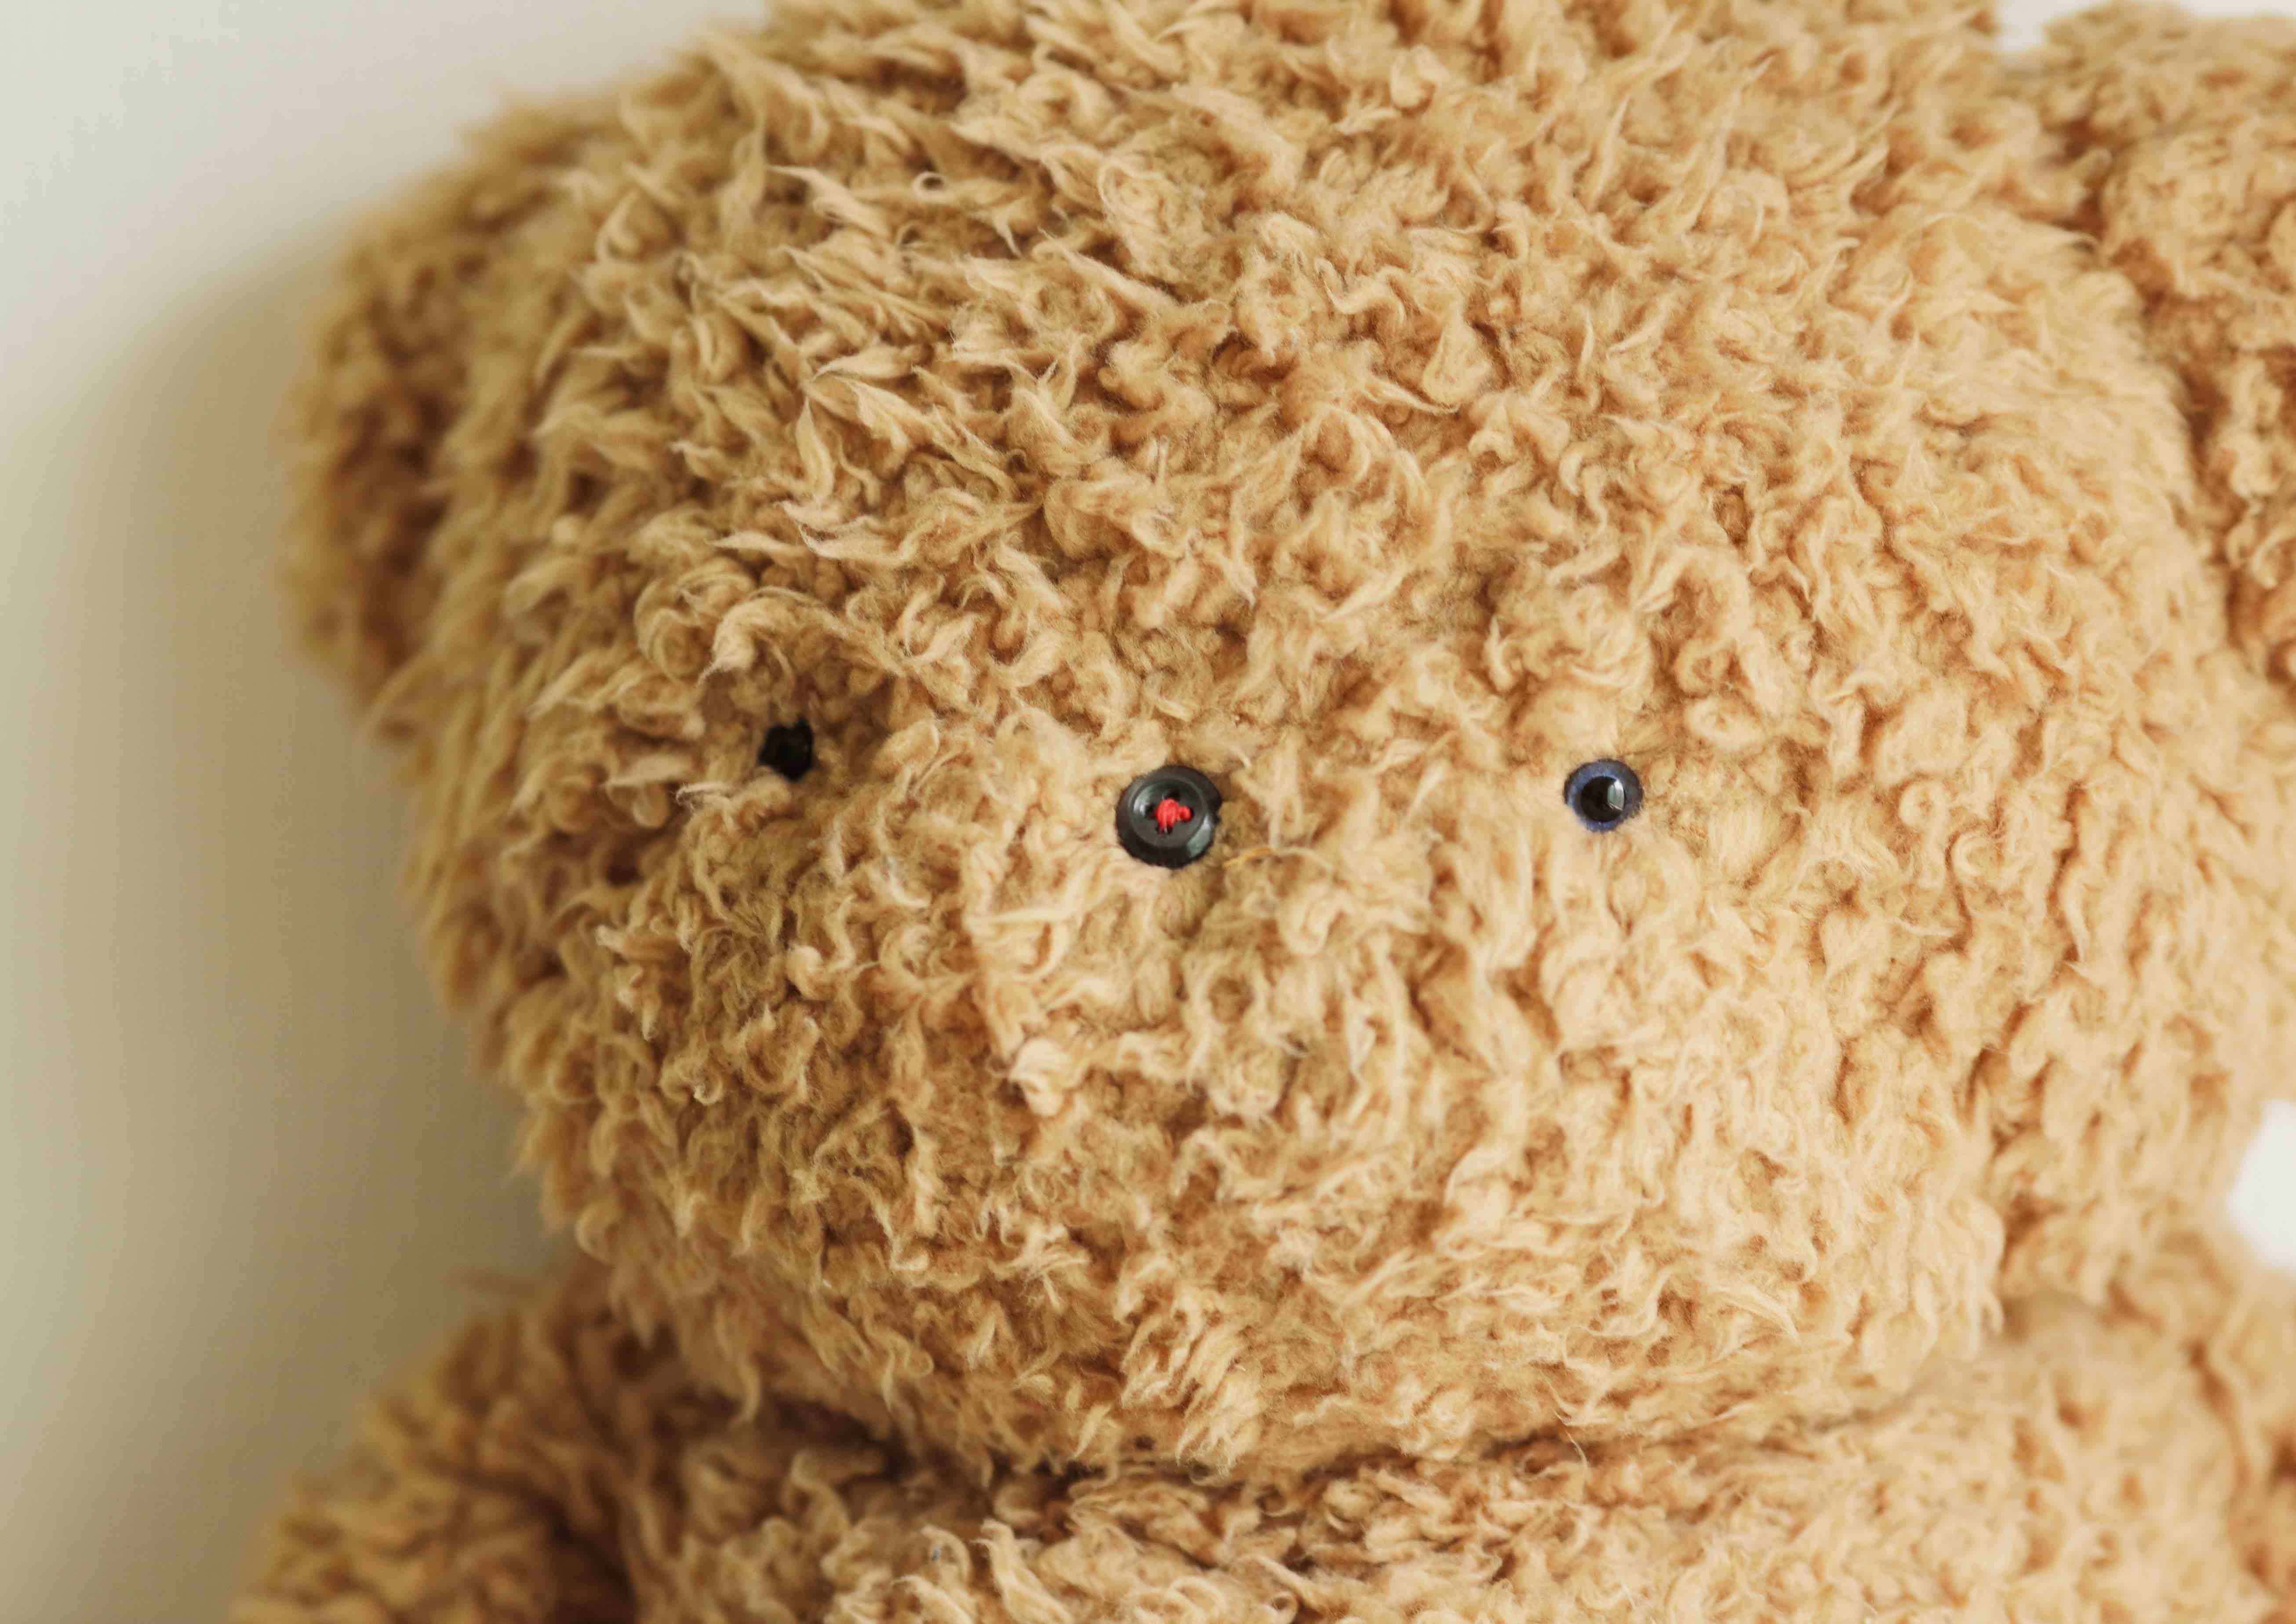 Dona El Regalo De Tu Ex: Peruvians Are Donating Teddy Bears From Their Exes to Needy Children